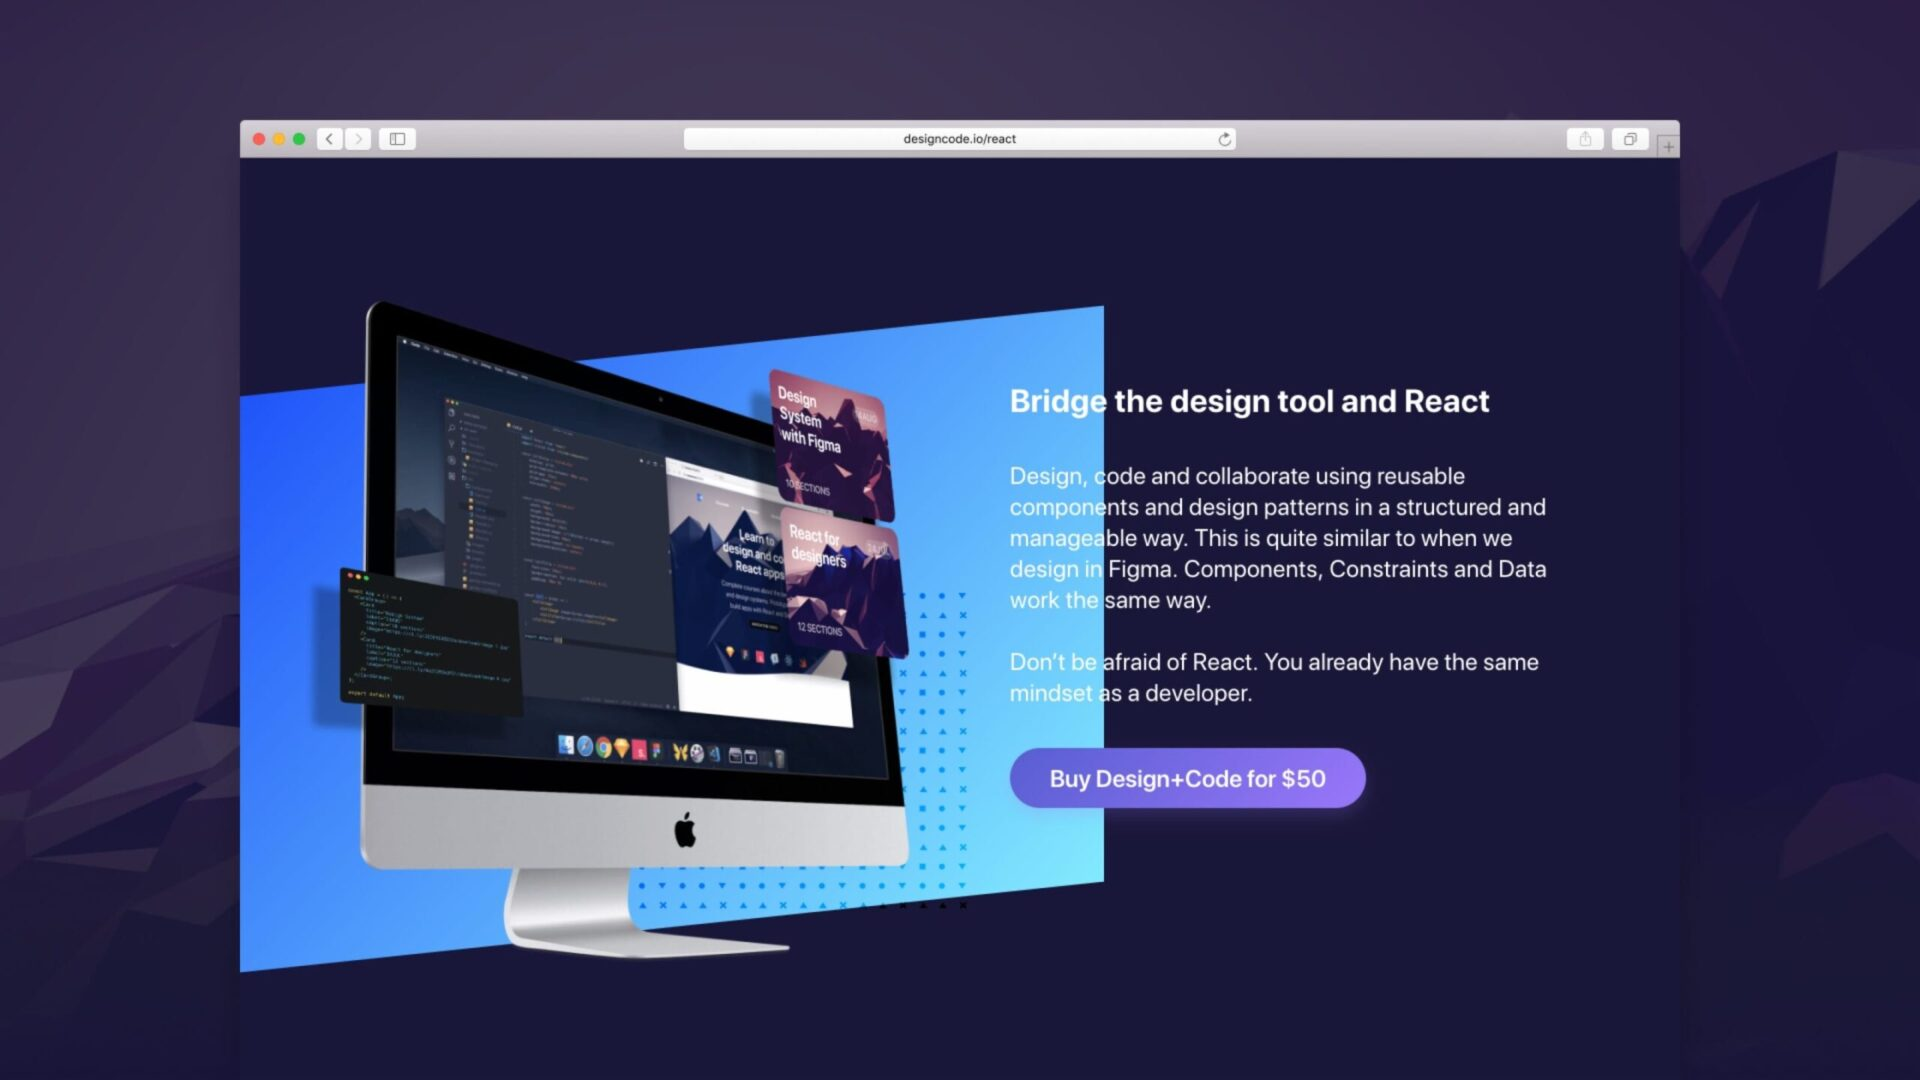 react-product-hunt-3